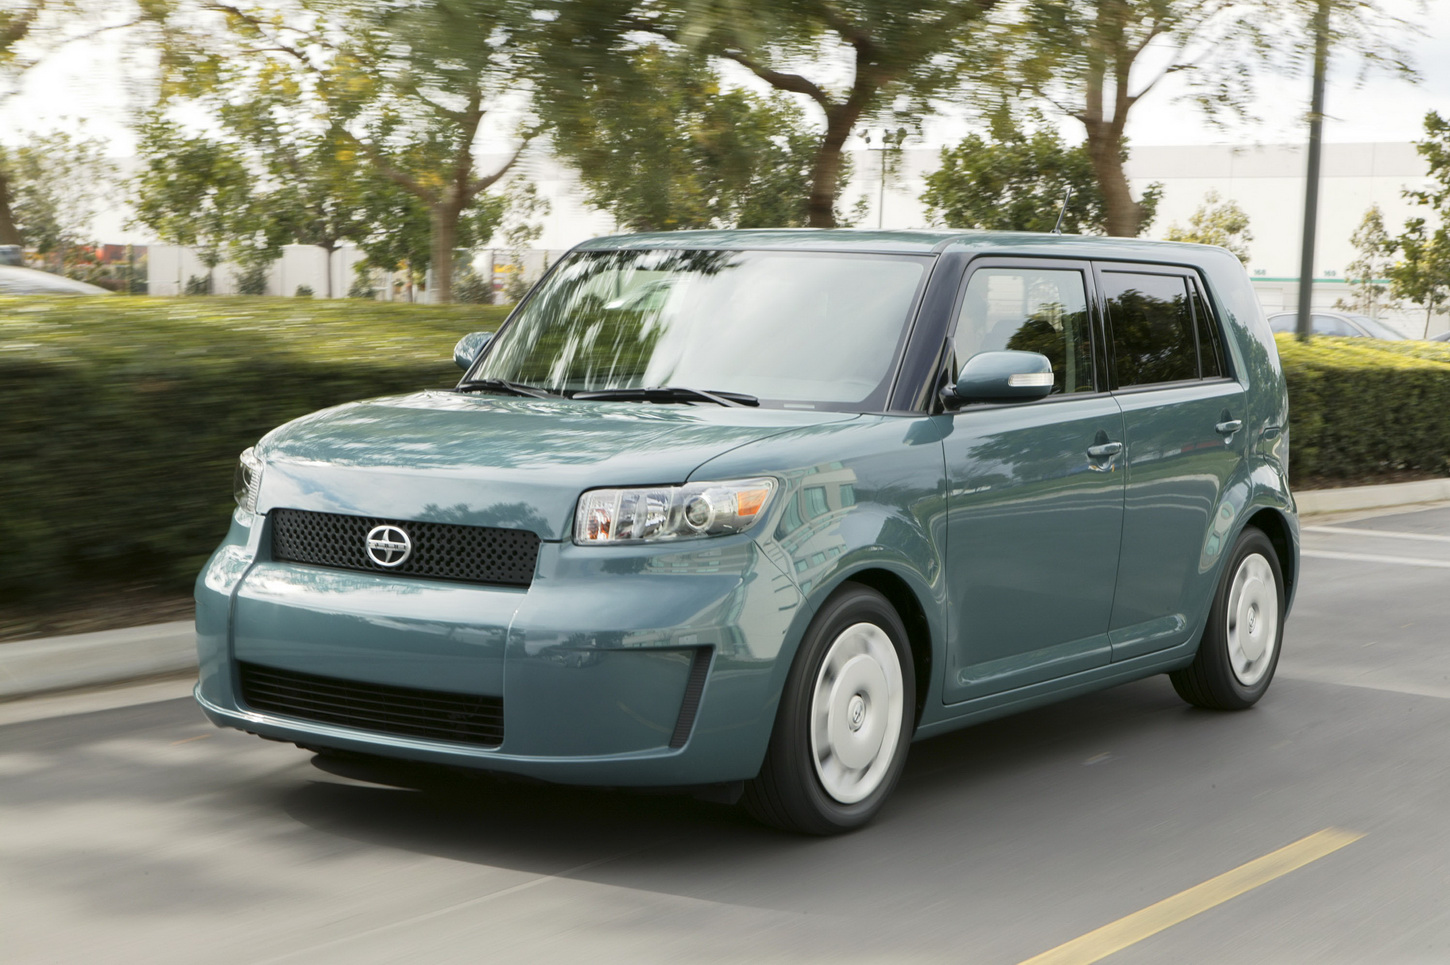 2010 Scion Xb #2